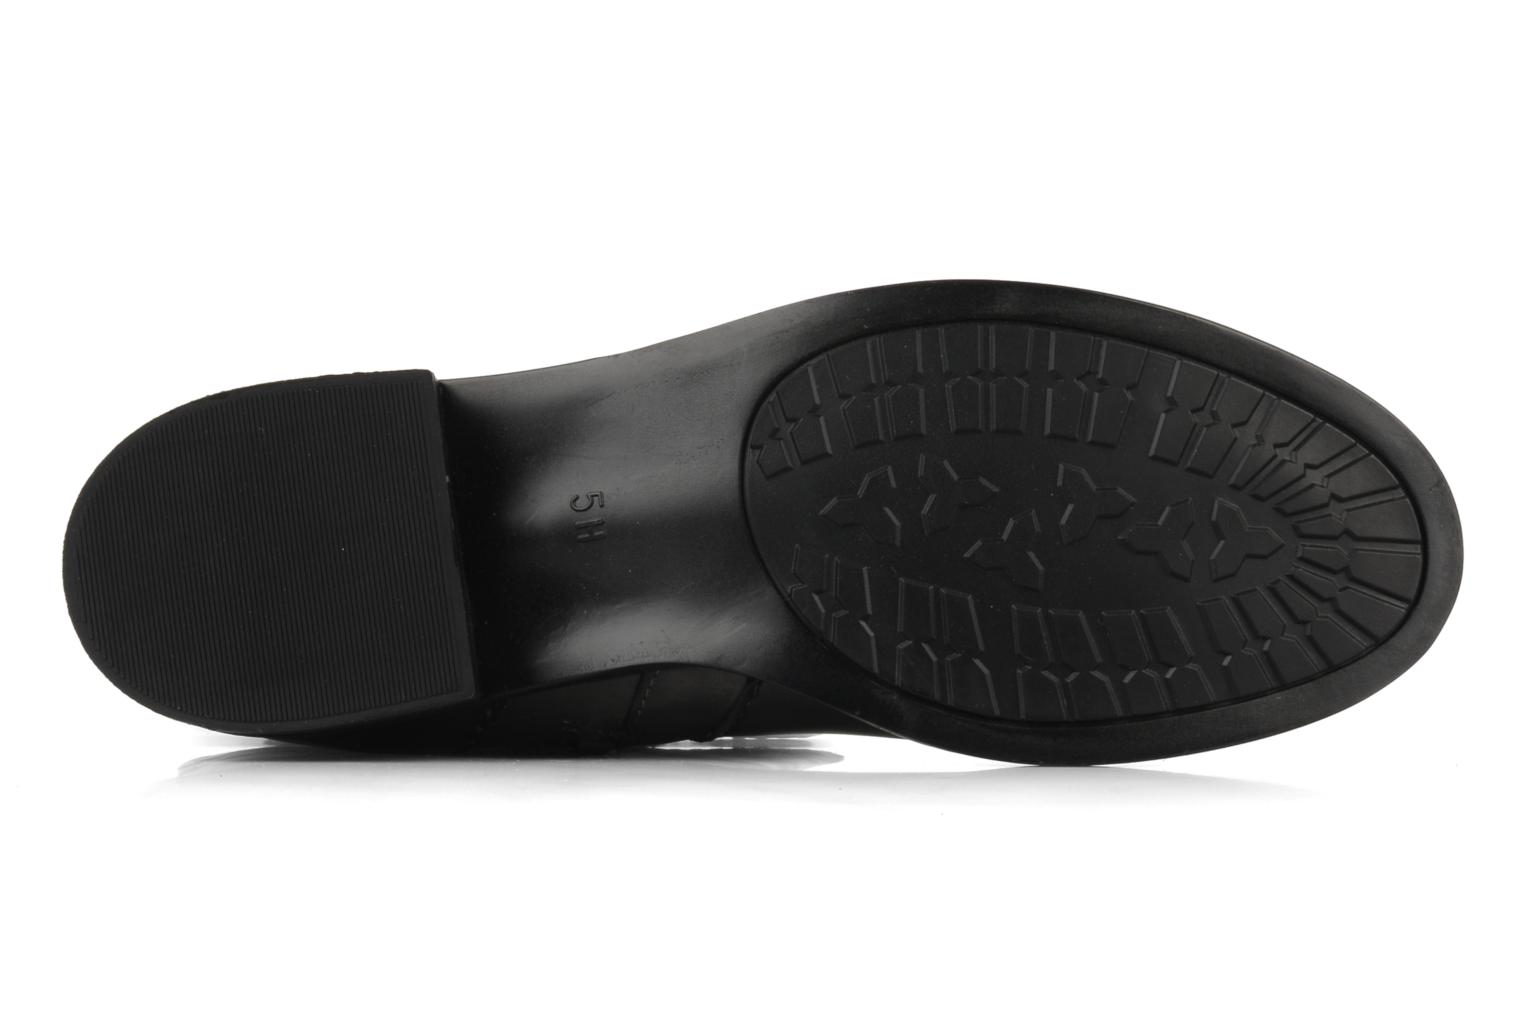 Vall Graphite leather